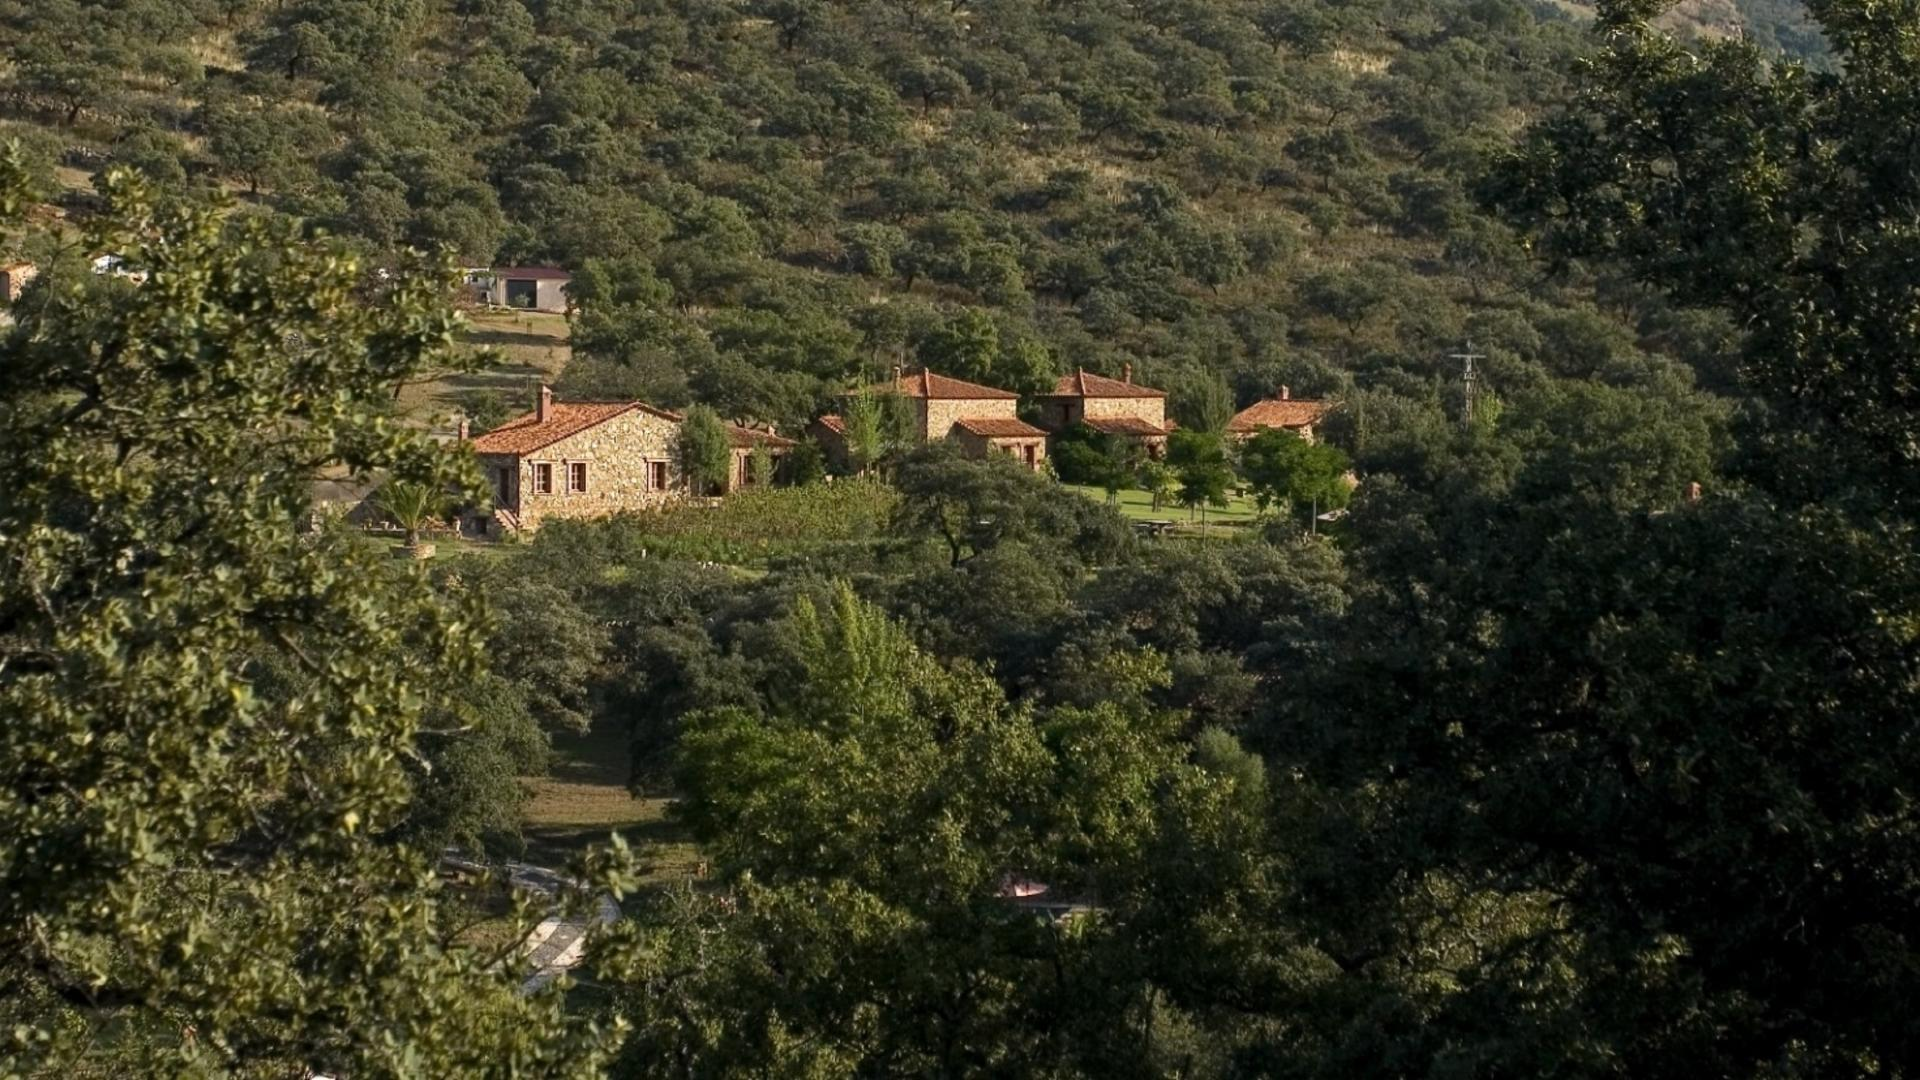 Molino Rio Alajar - rustic family-friendly holiday cottages in Spain